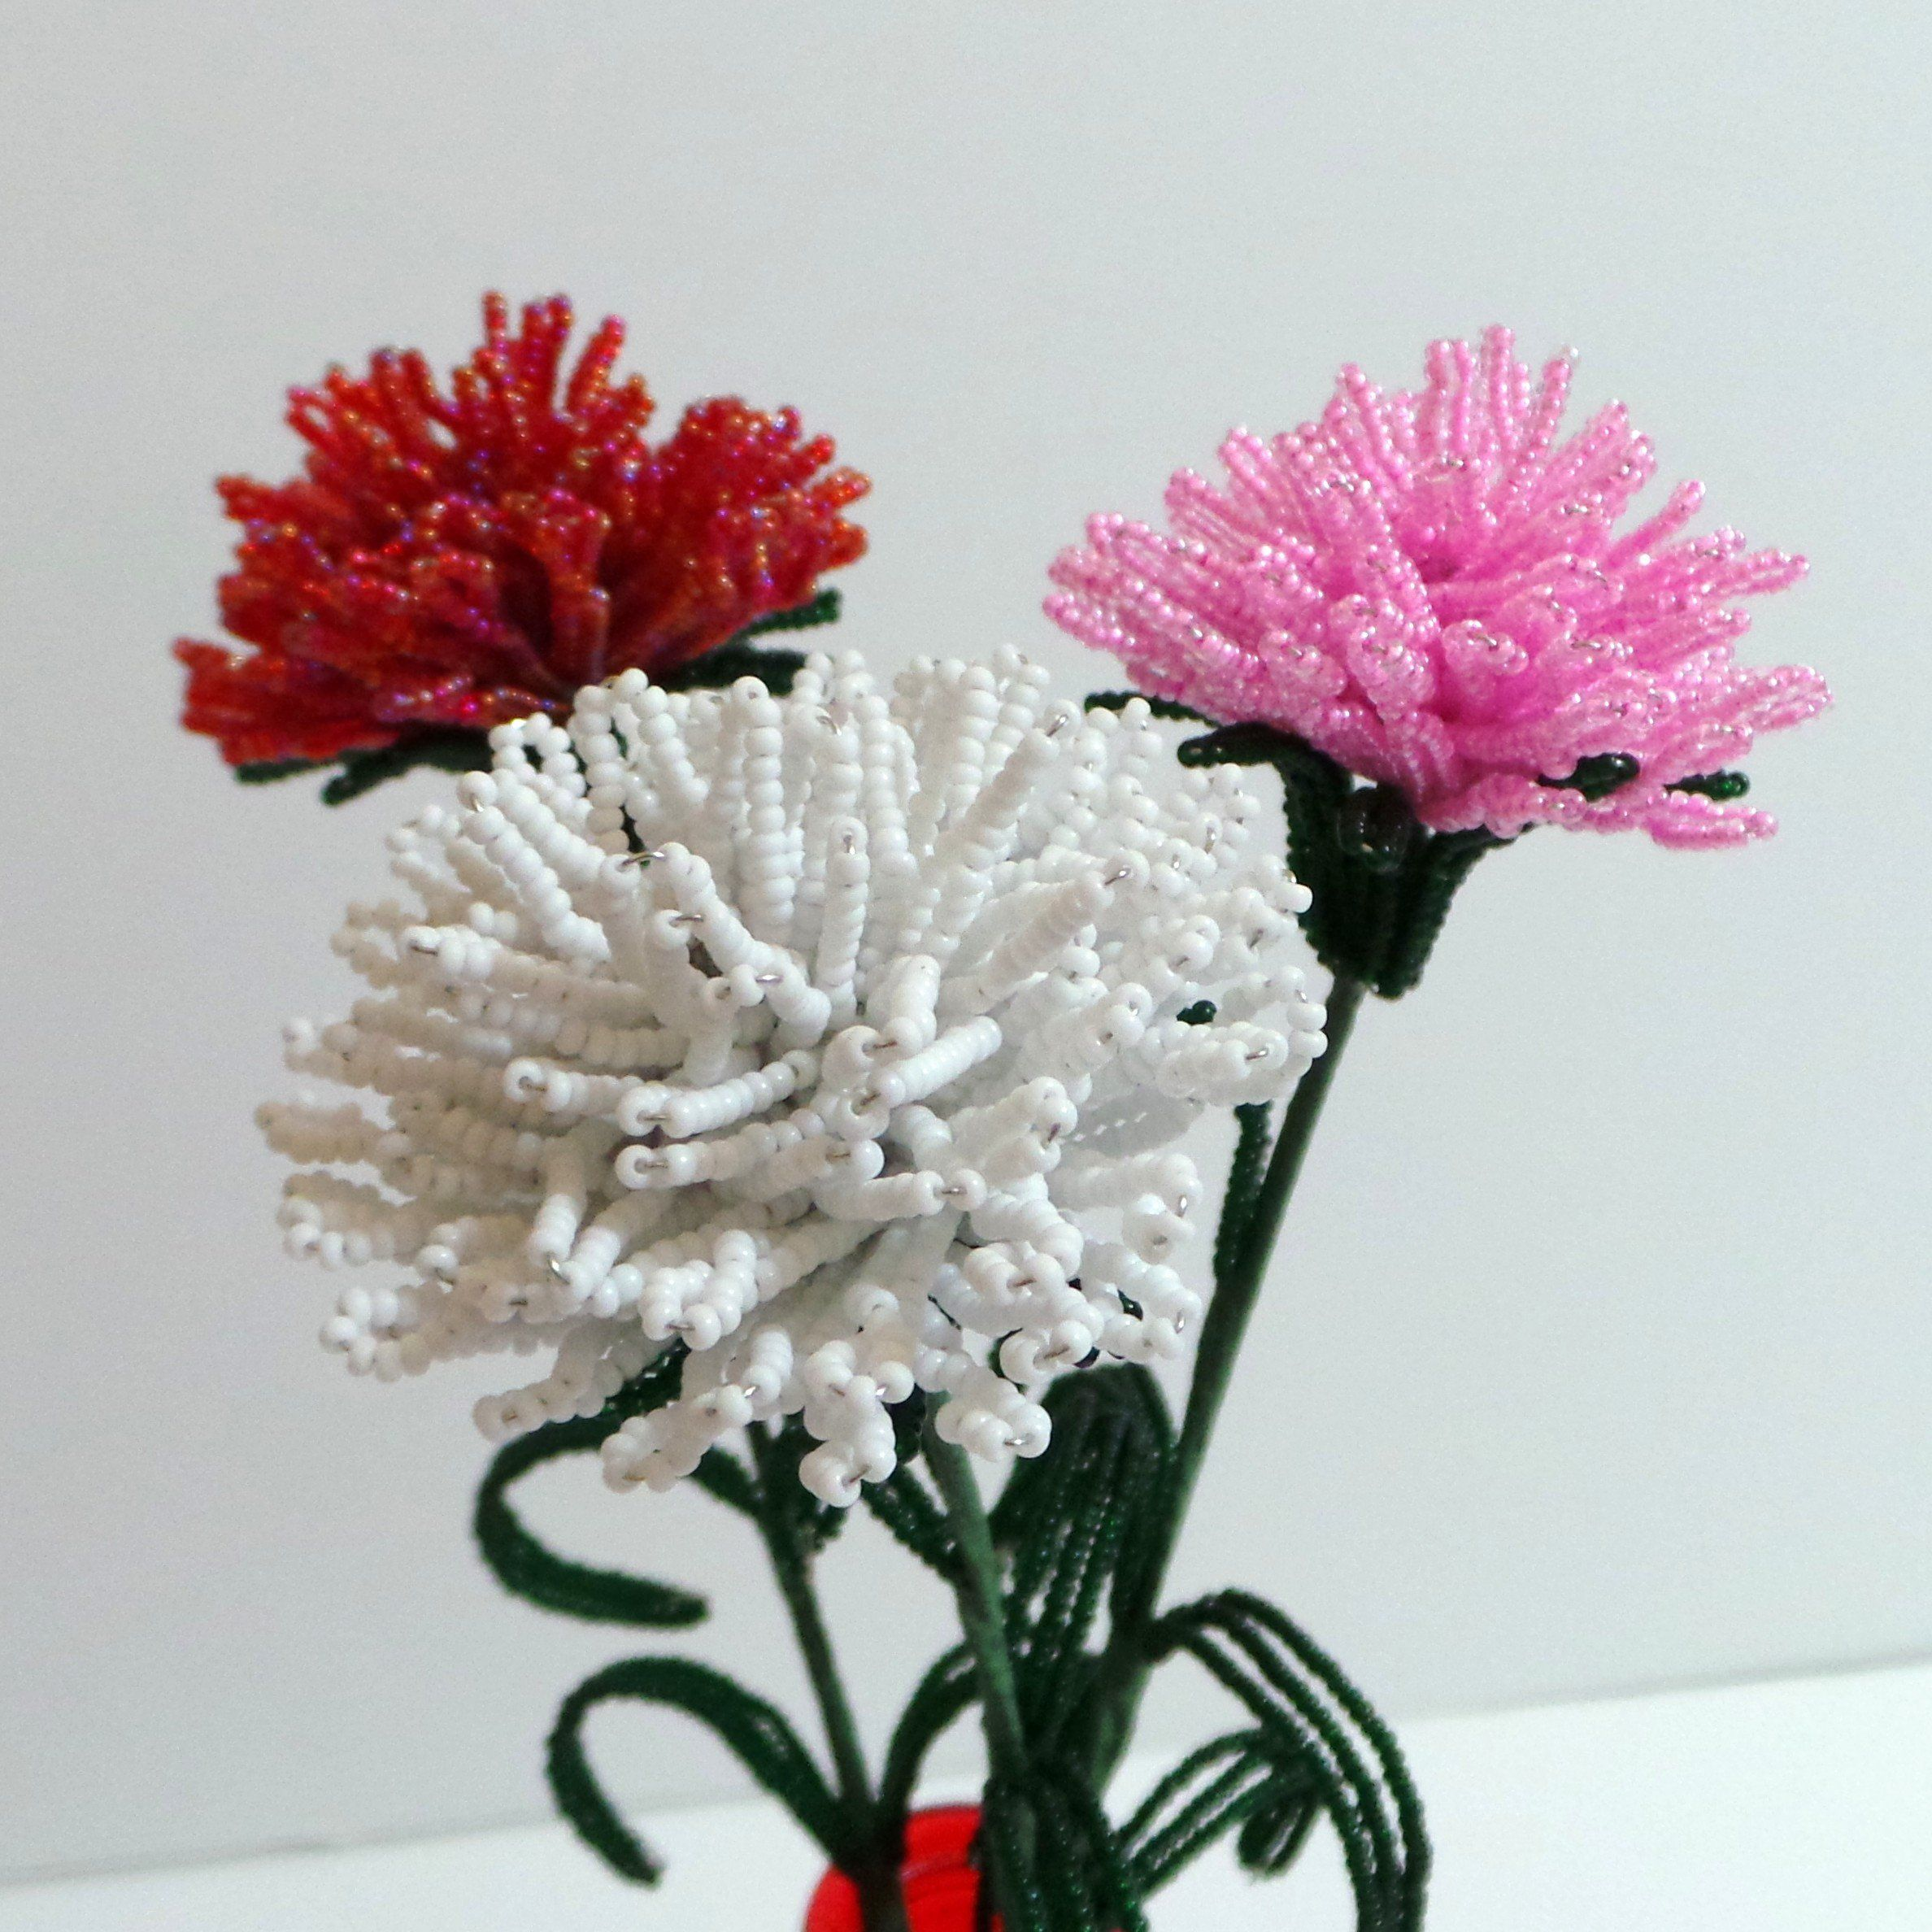 French Beaded Flowers Three Carnations In Red White Pink Beaded Flowers French Beaded Flowers Flowers